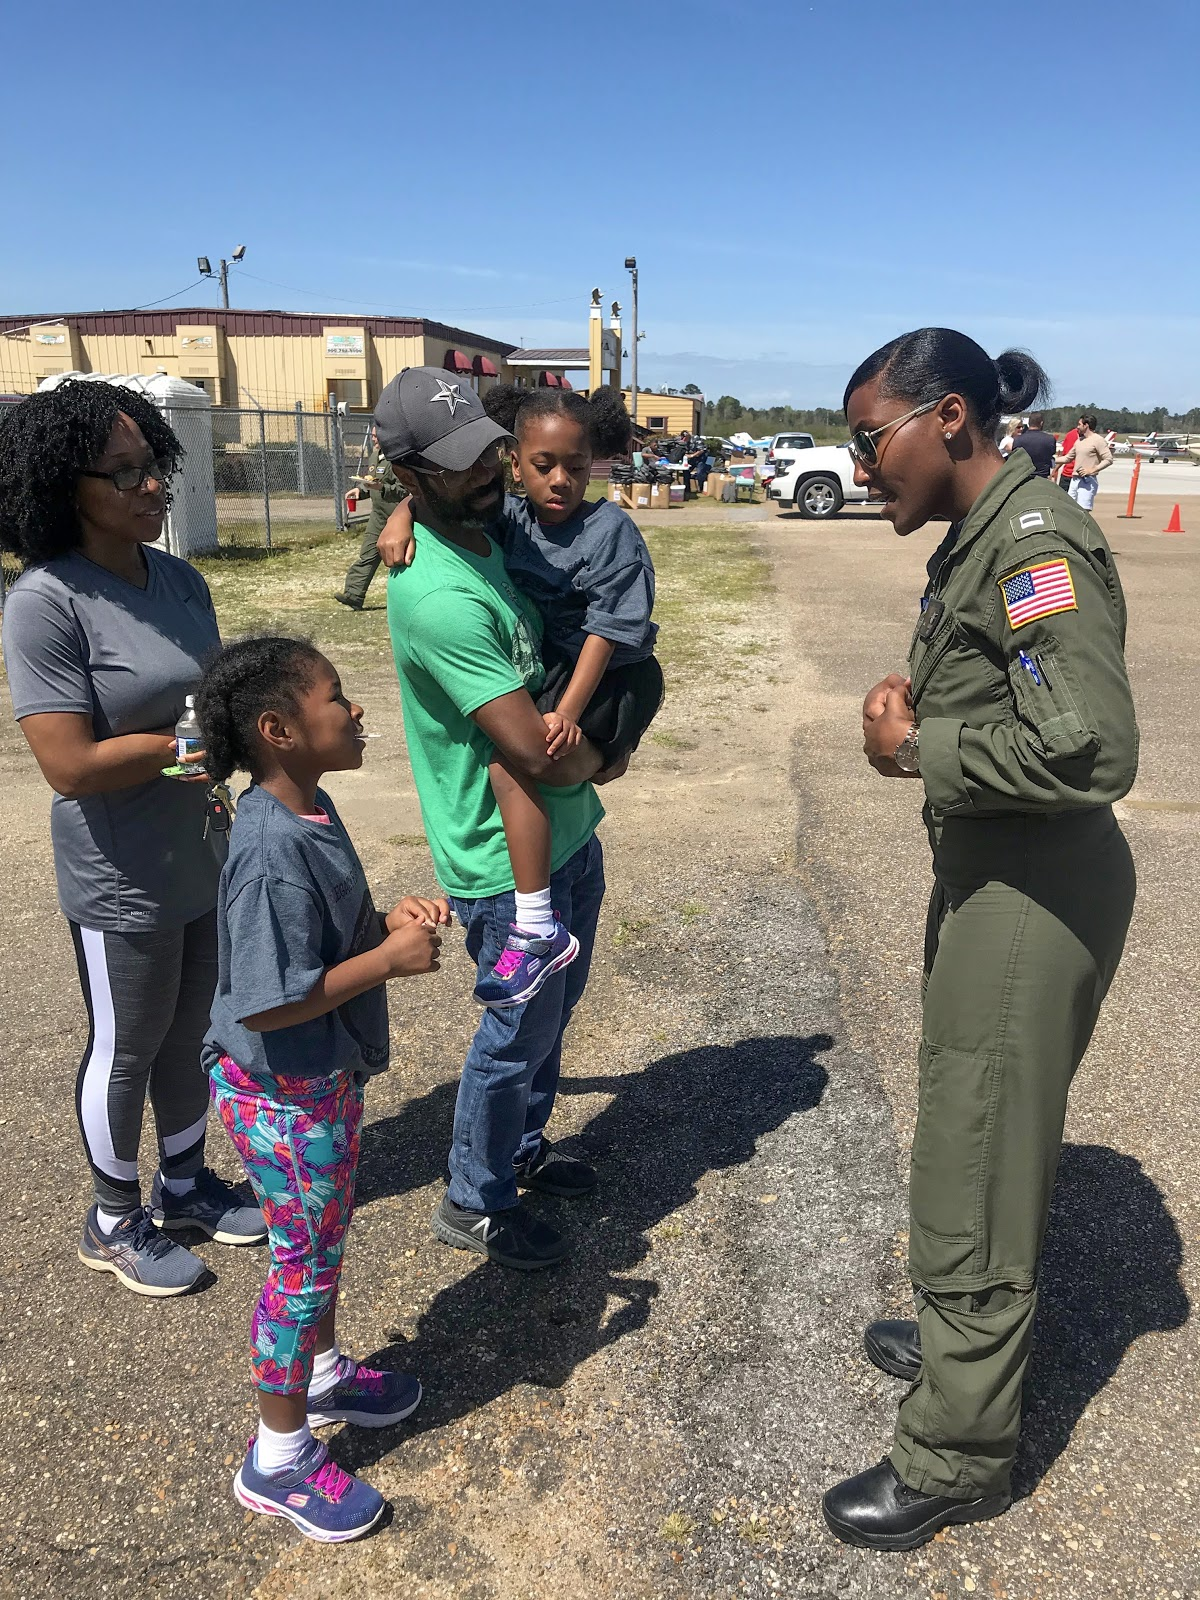 Coast Guard pilot Angel Hughes invites a participant to visit her airplane during a youth flight camp in Tuskegee, AL.  Photo courtesy of Danielle Williams